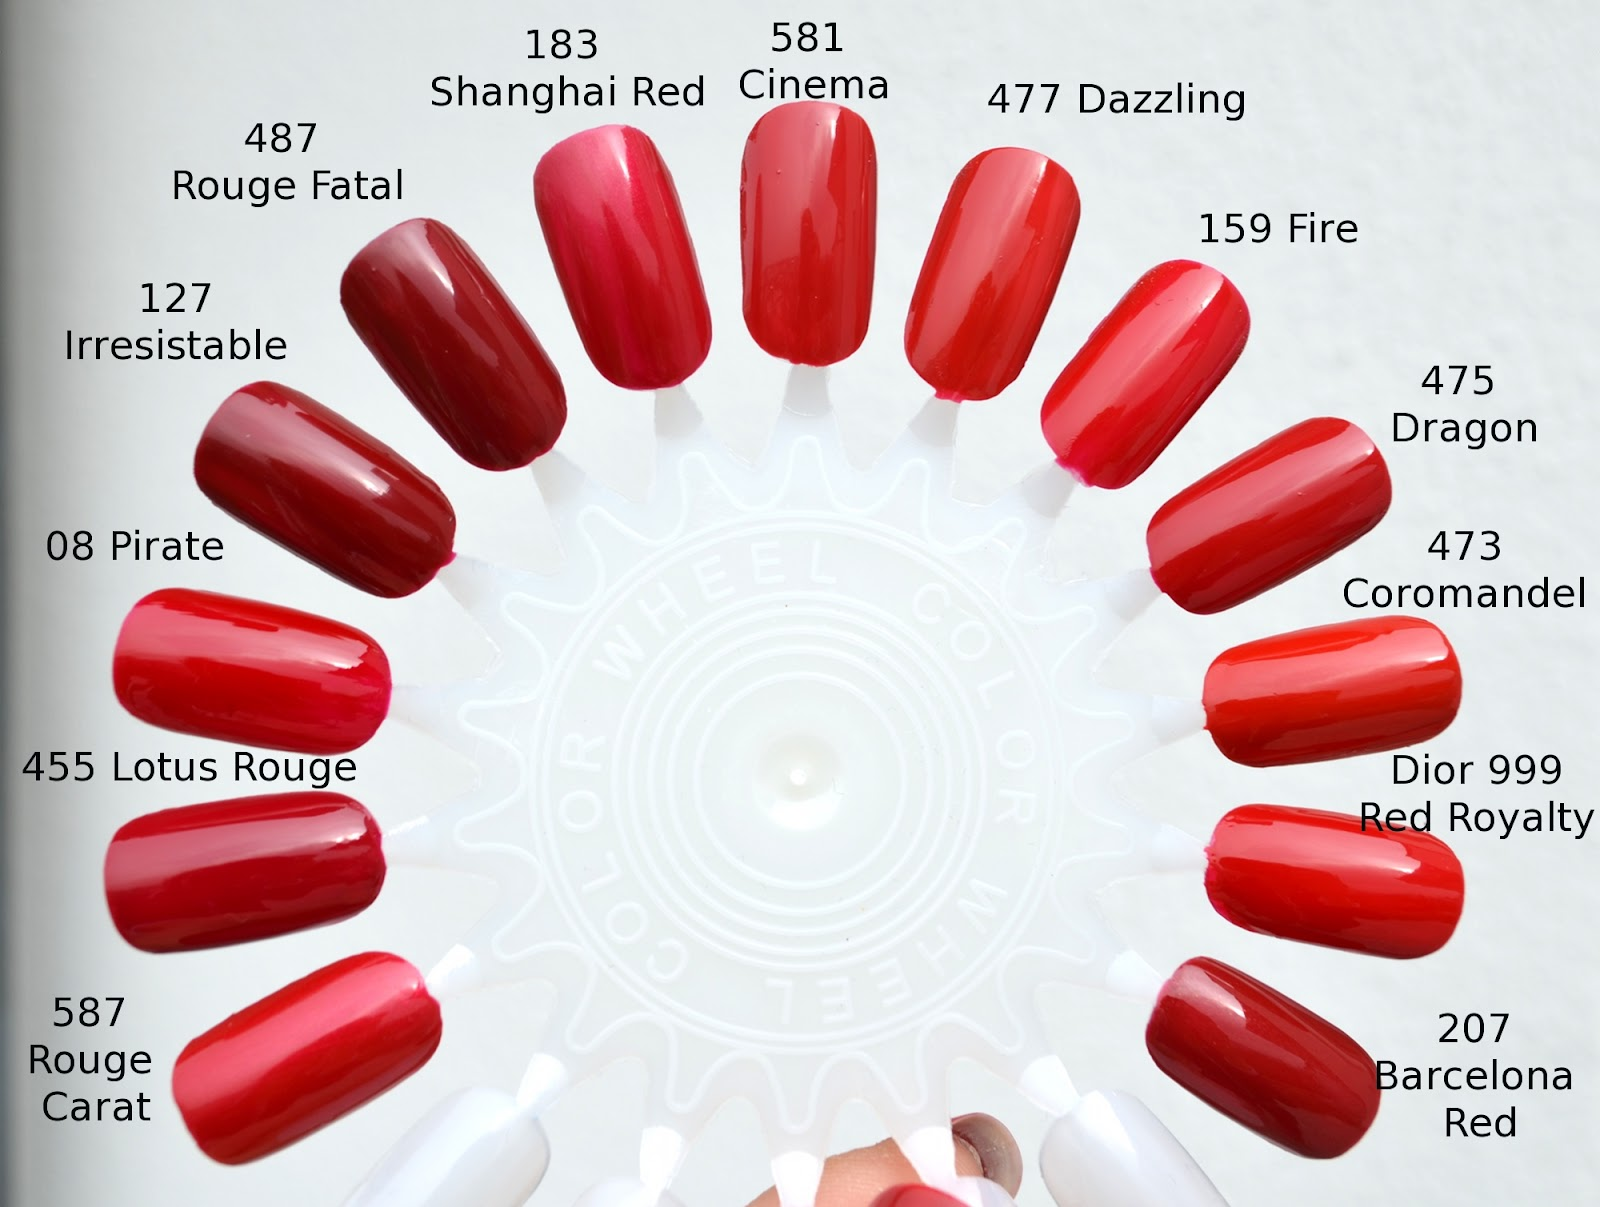 Shades Of Red chanel 581 cinema & fifty shades of red | color me loud | bloglovin'